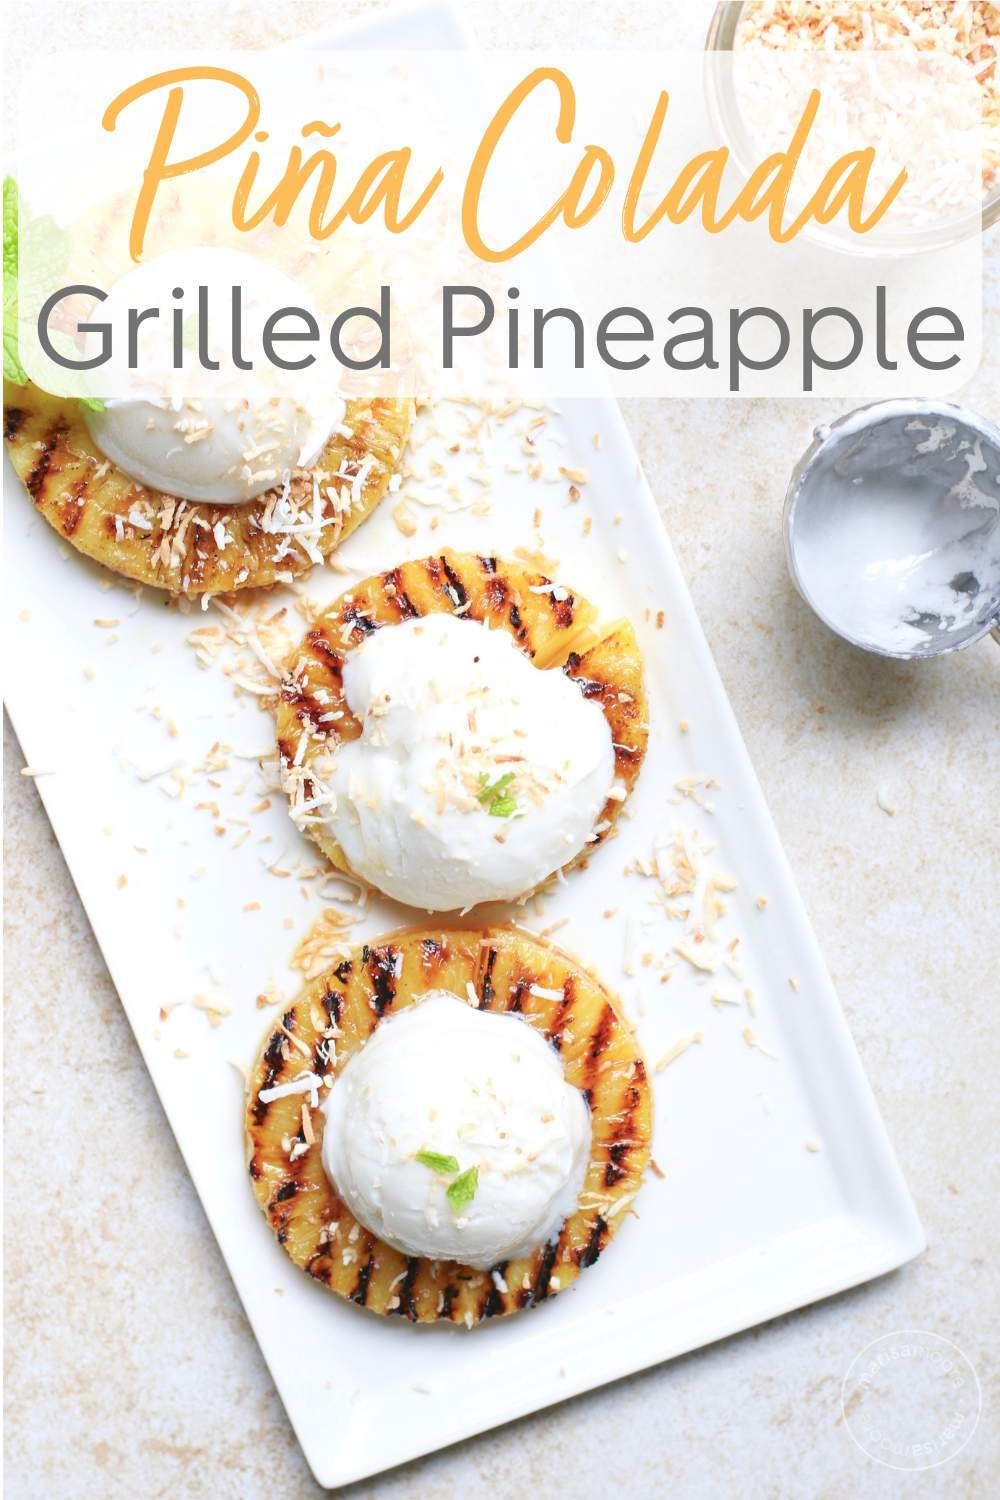 Grilled pineapple topped with coconut ice cream and toasted coconut on a plate